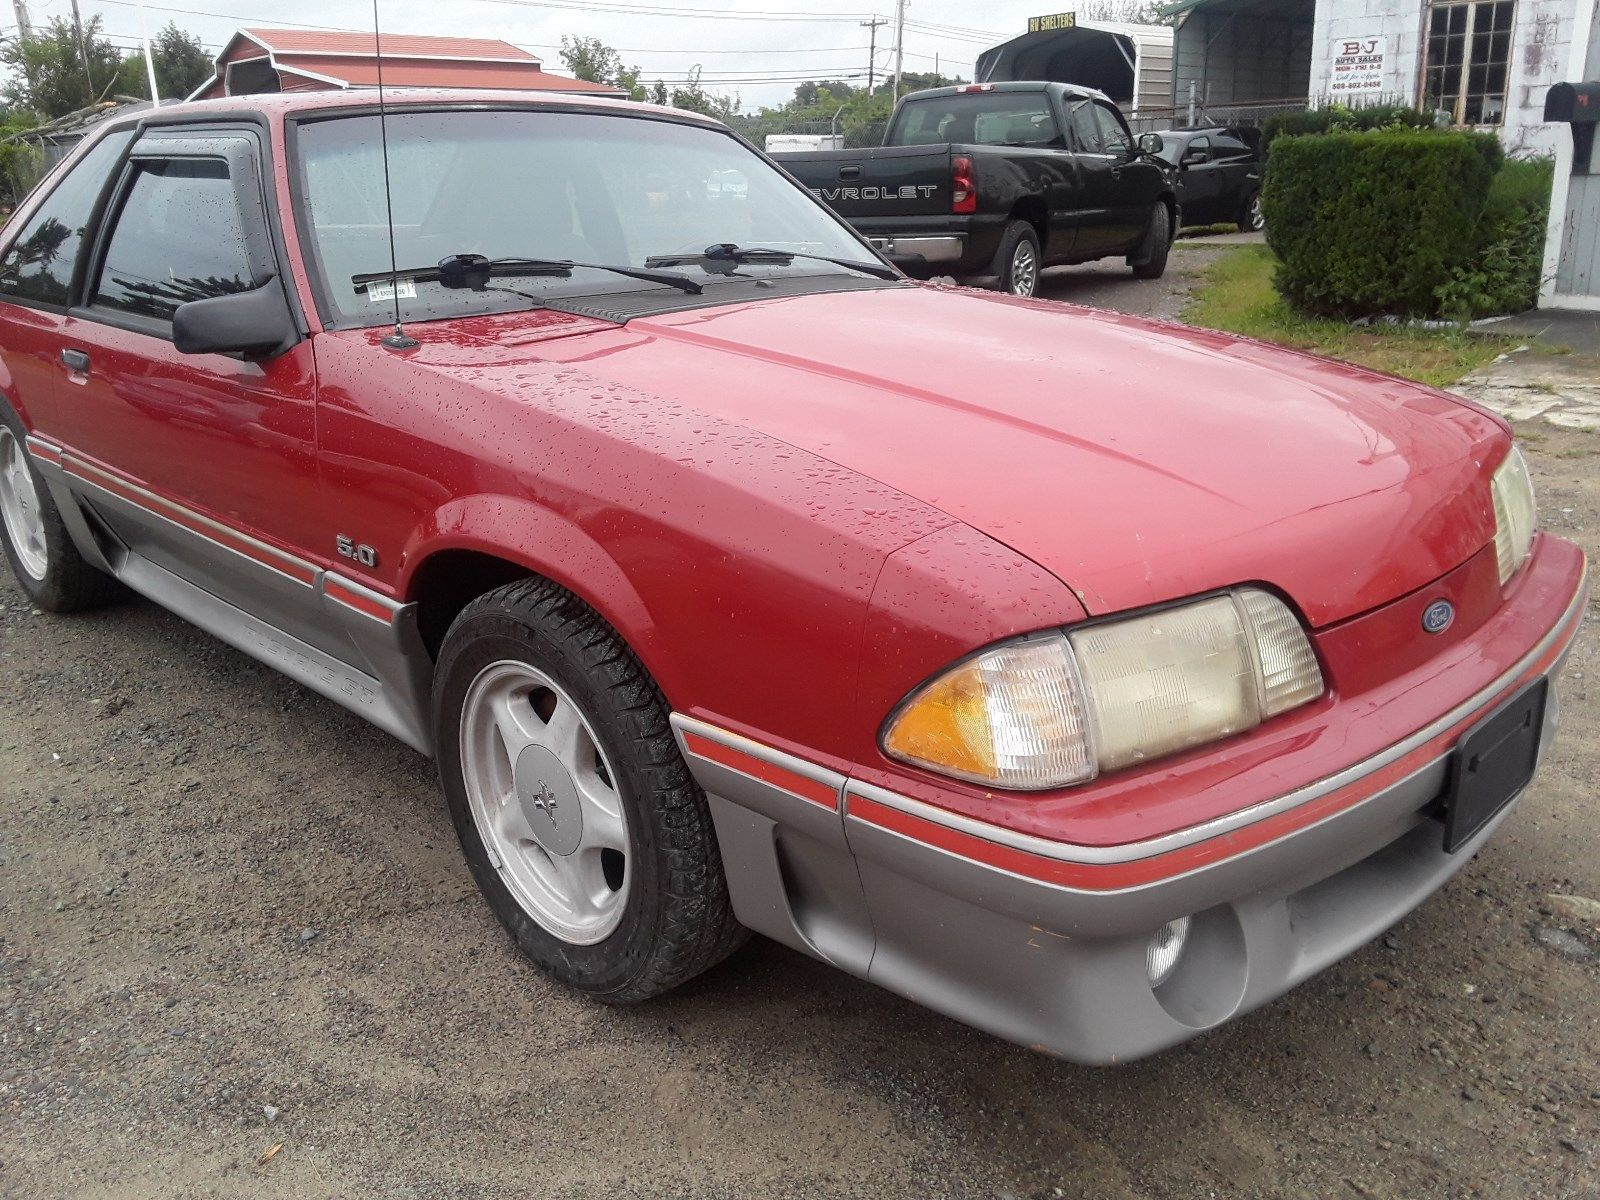 Great 1988 Ford Mustang gt 1988 ford mustang gt 5 0 5speed rust free  2018-2019